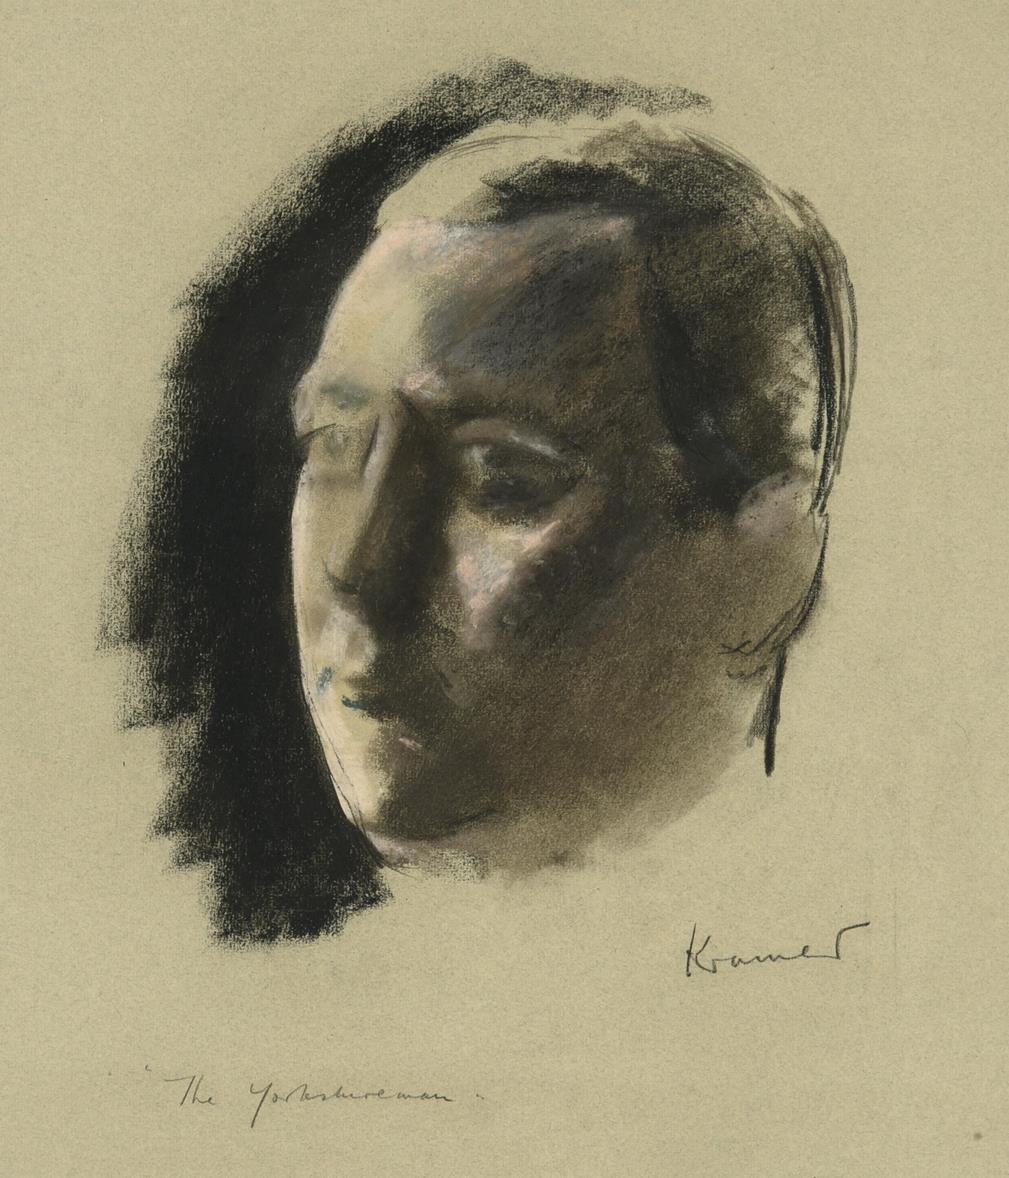 """Jacob Kramer (1892-1962) """"The Yorkshireman"""" Signed and inscribed, charcoal and chalk"""